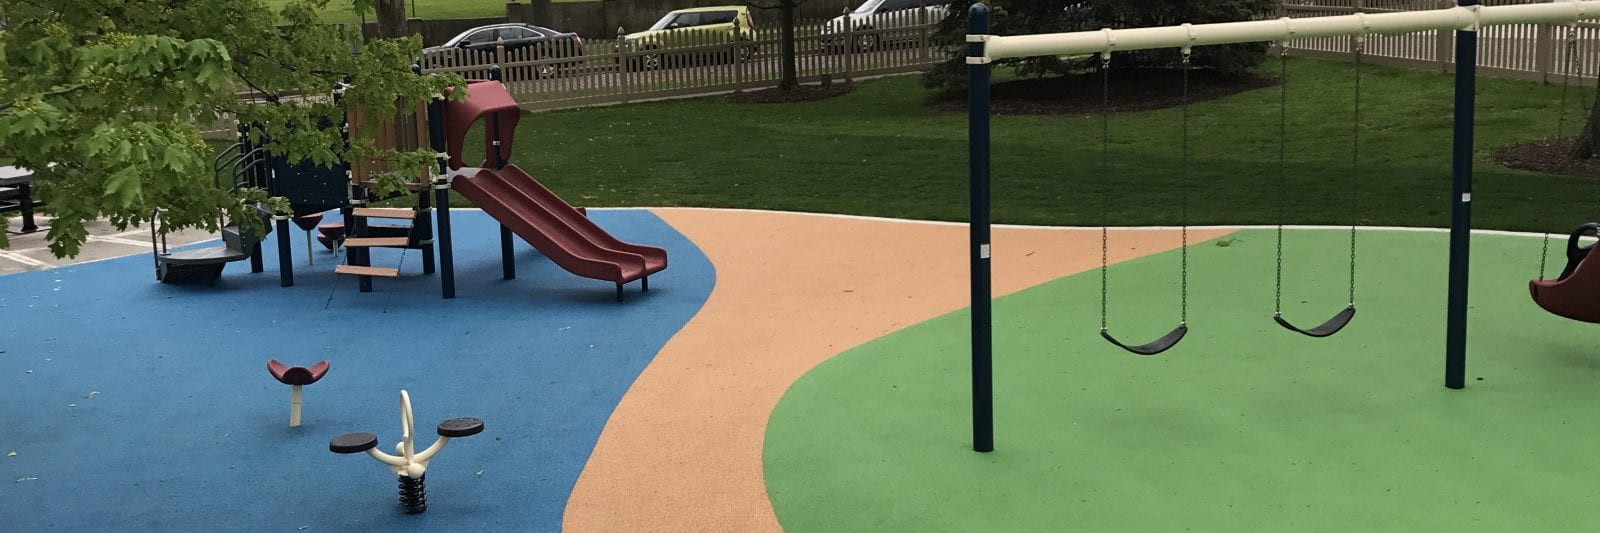 Photo of a Poured in Place Rubber playground